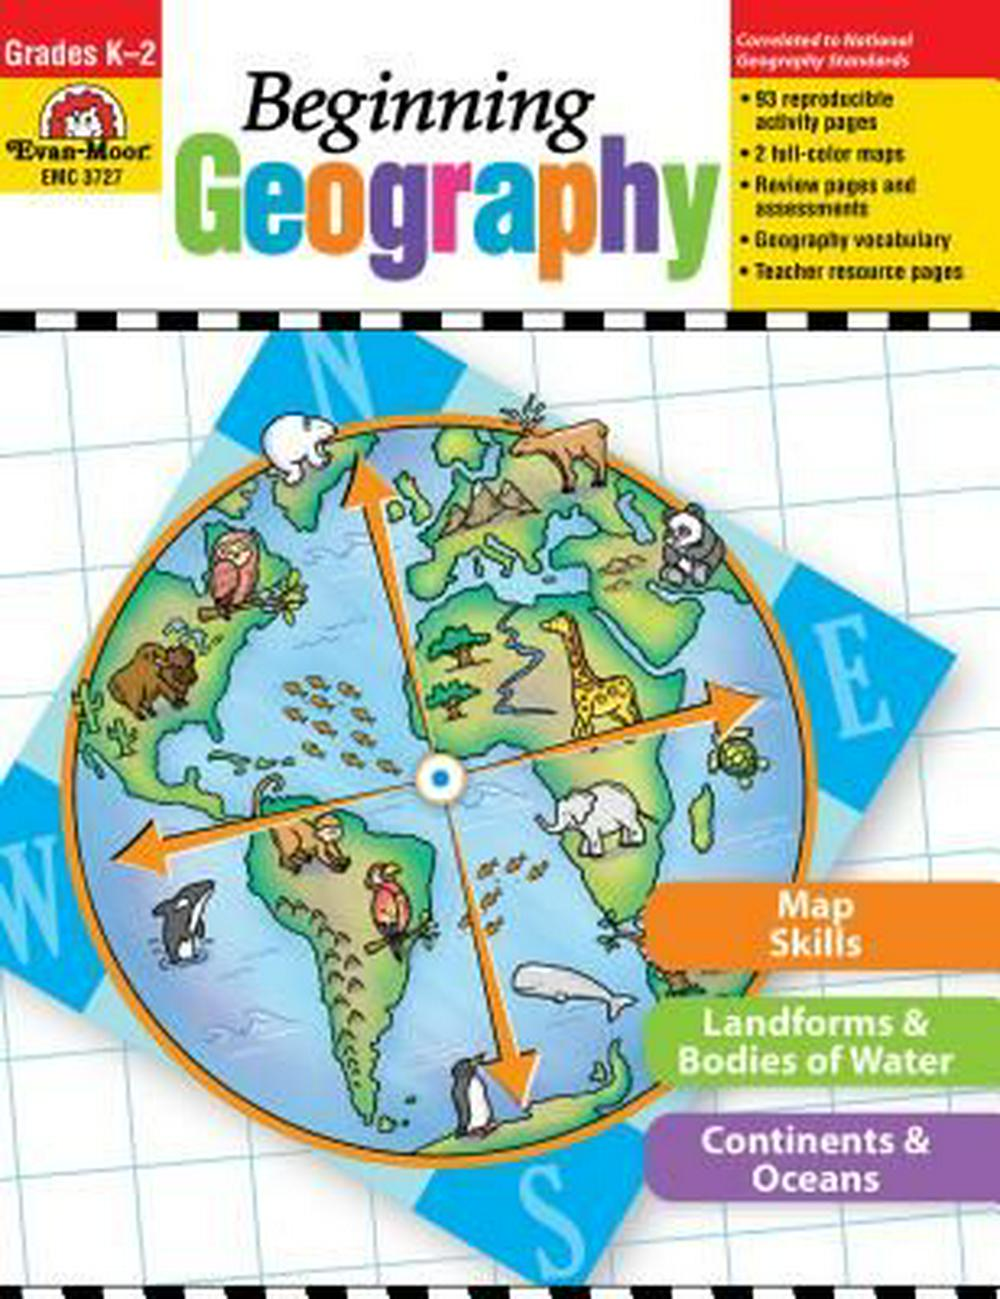 Beginning Geography, Grades K-2 by Evan-Moor, ISBN: 9781608236763